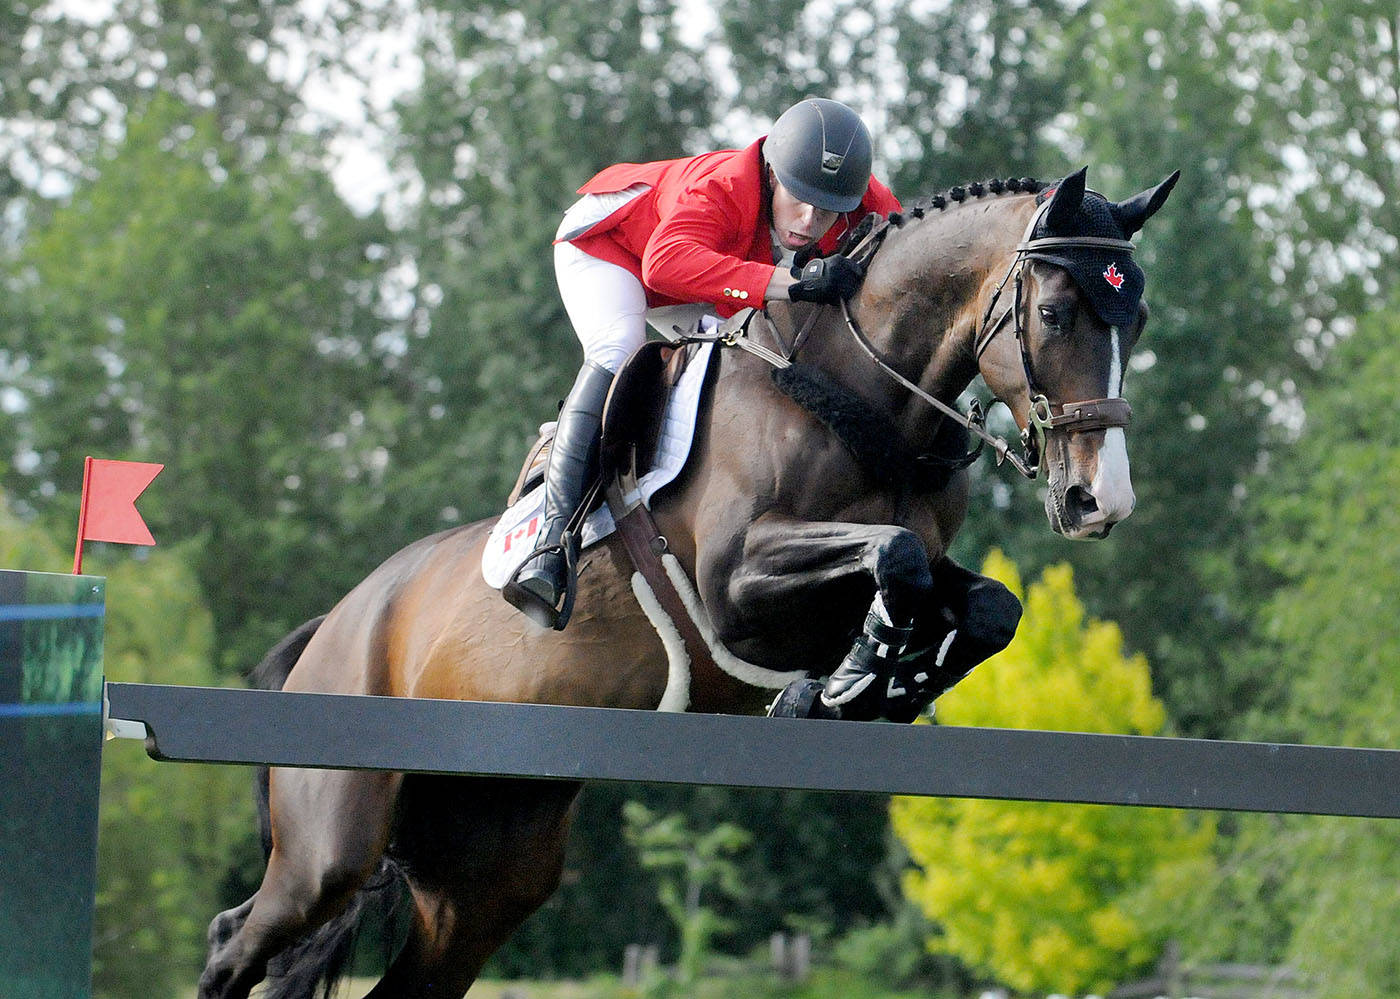 Team Canada's Christopher Surbey, aboard Chalacorada, navigated the course during the FEI Nations Cup held Friday at Thunderbird Show Park. Troy Landreville Langley Times